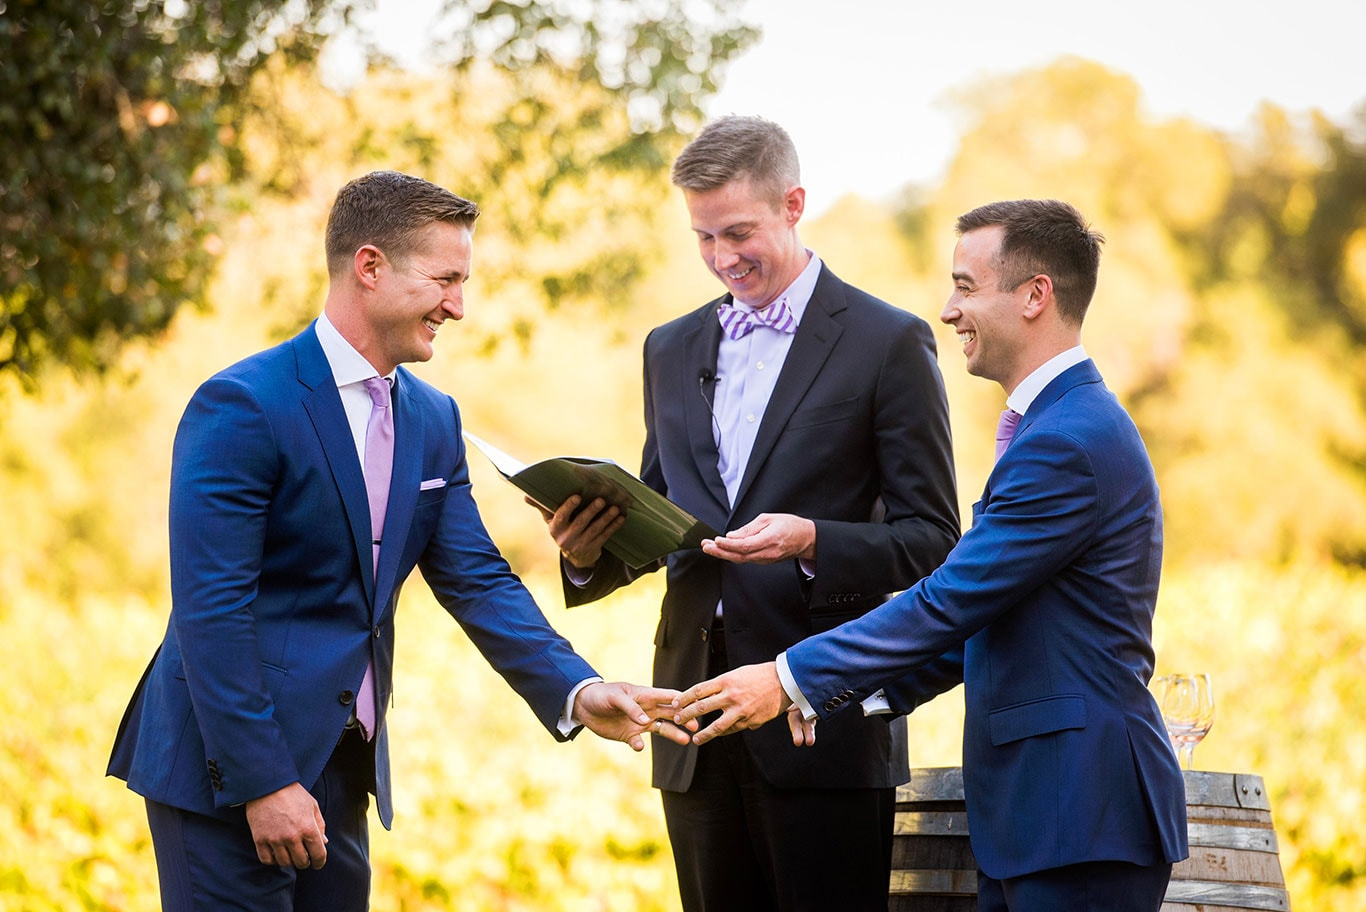 Same-Sex Wedding Ceremony in Healdsburg